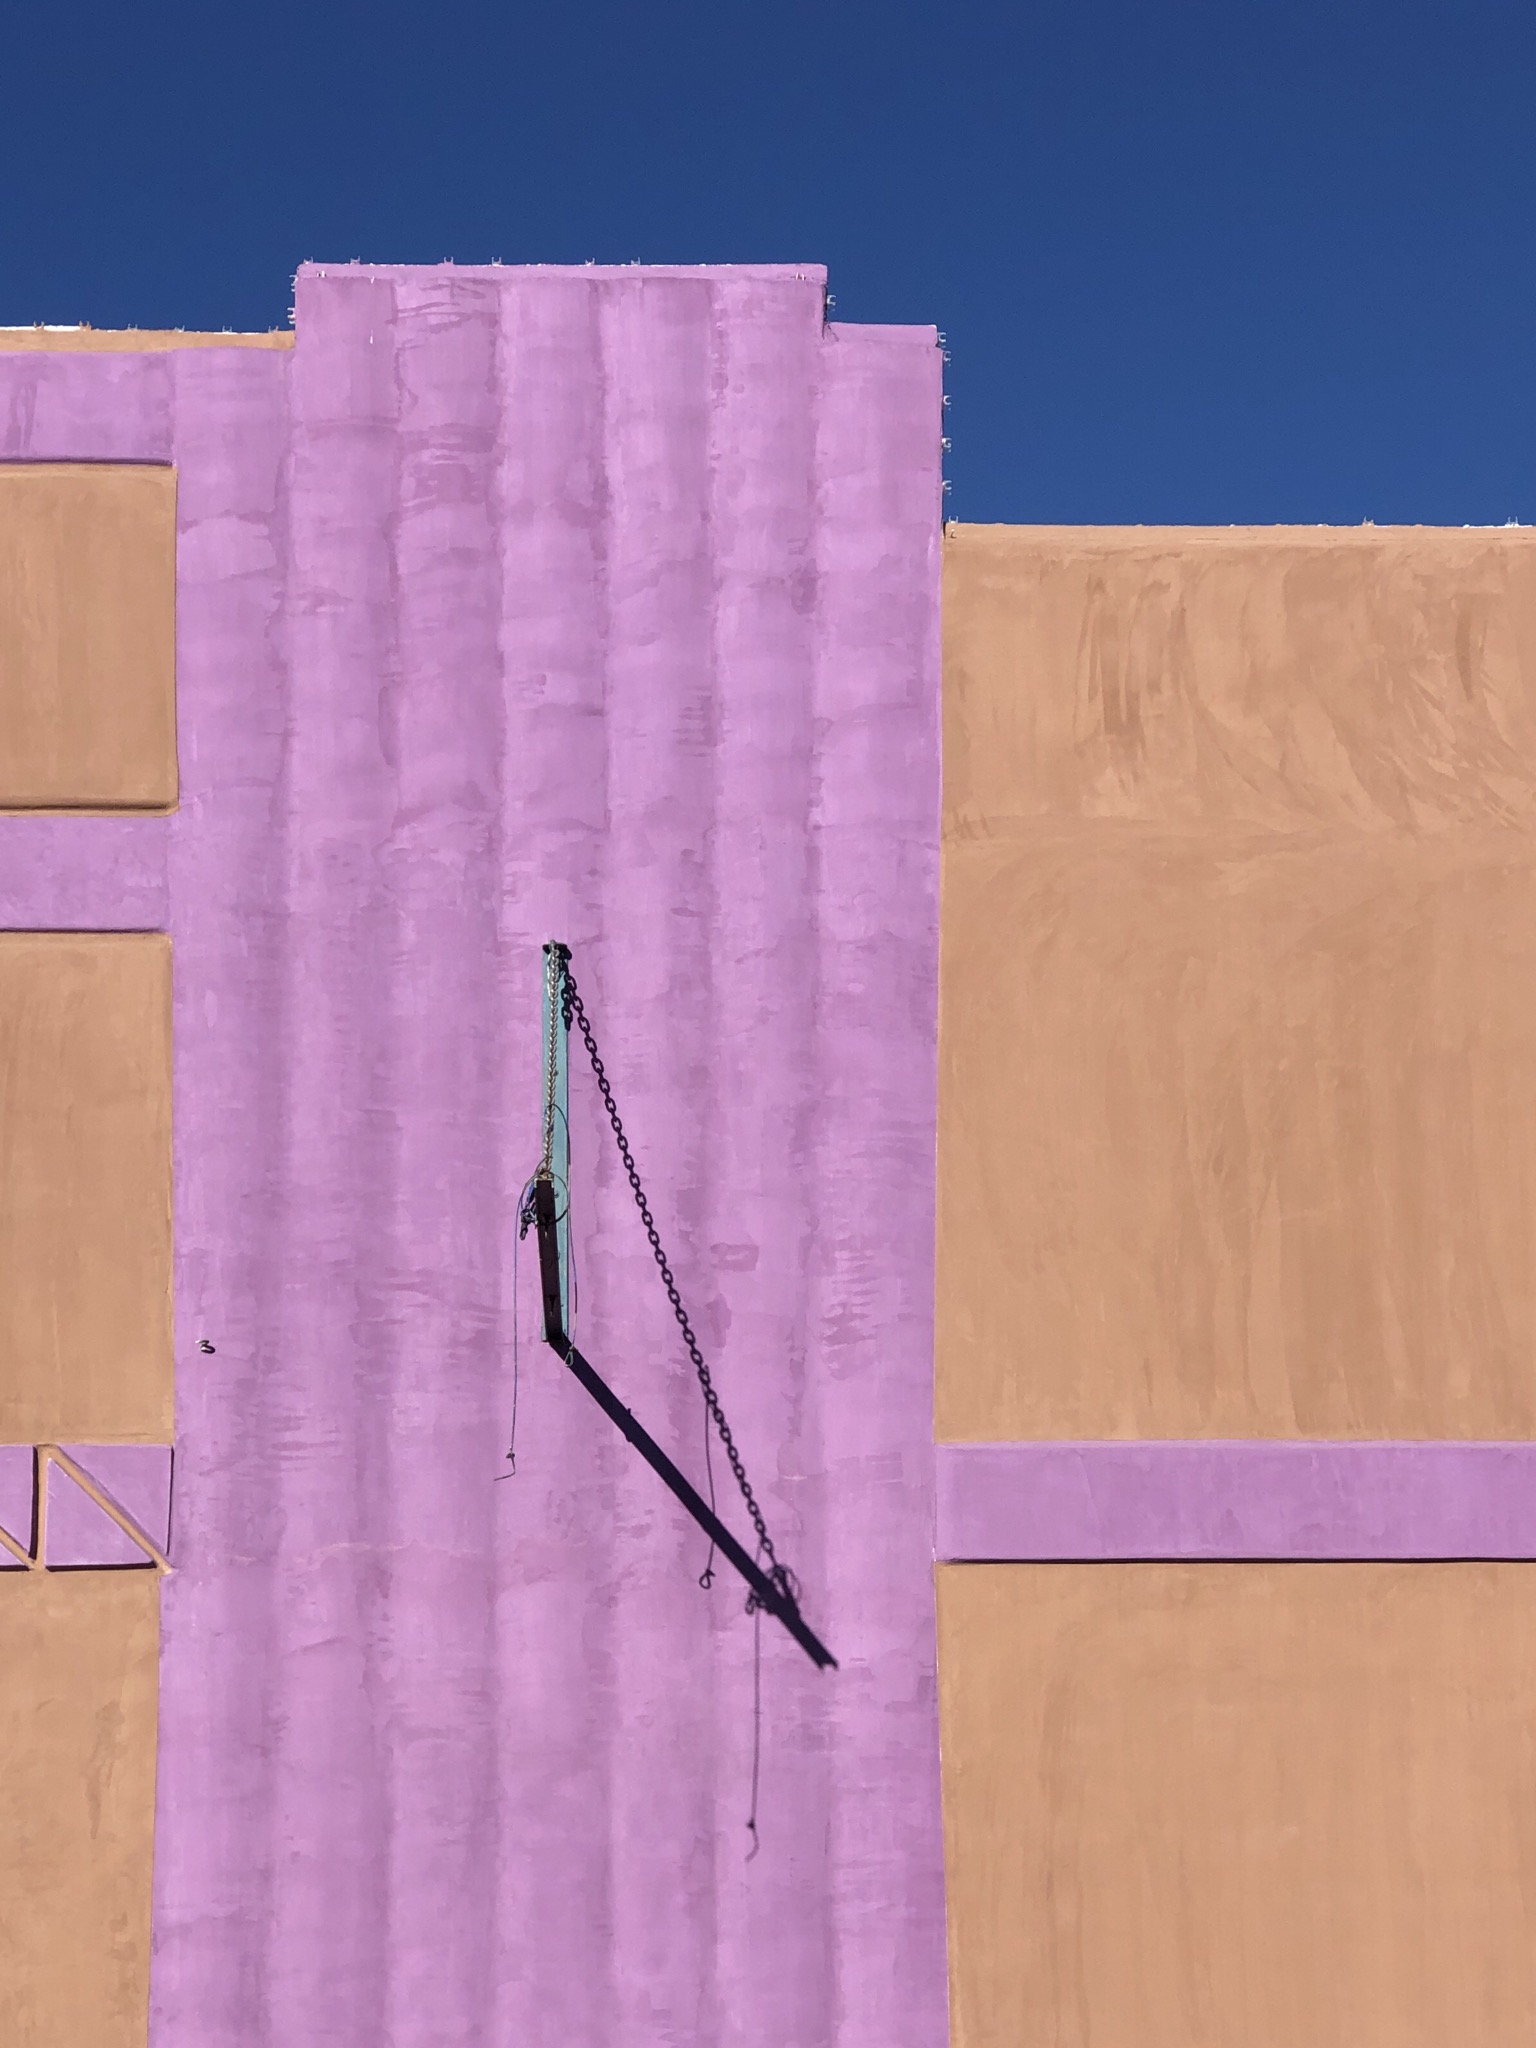 A terra cotta colored wall with pink stripes and a sharp black shadow across it